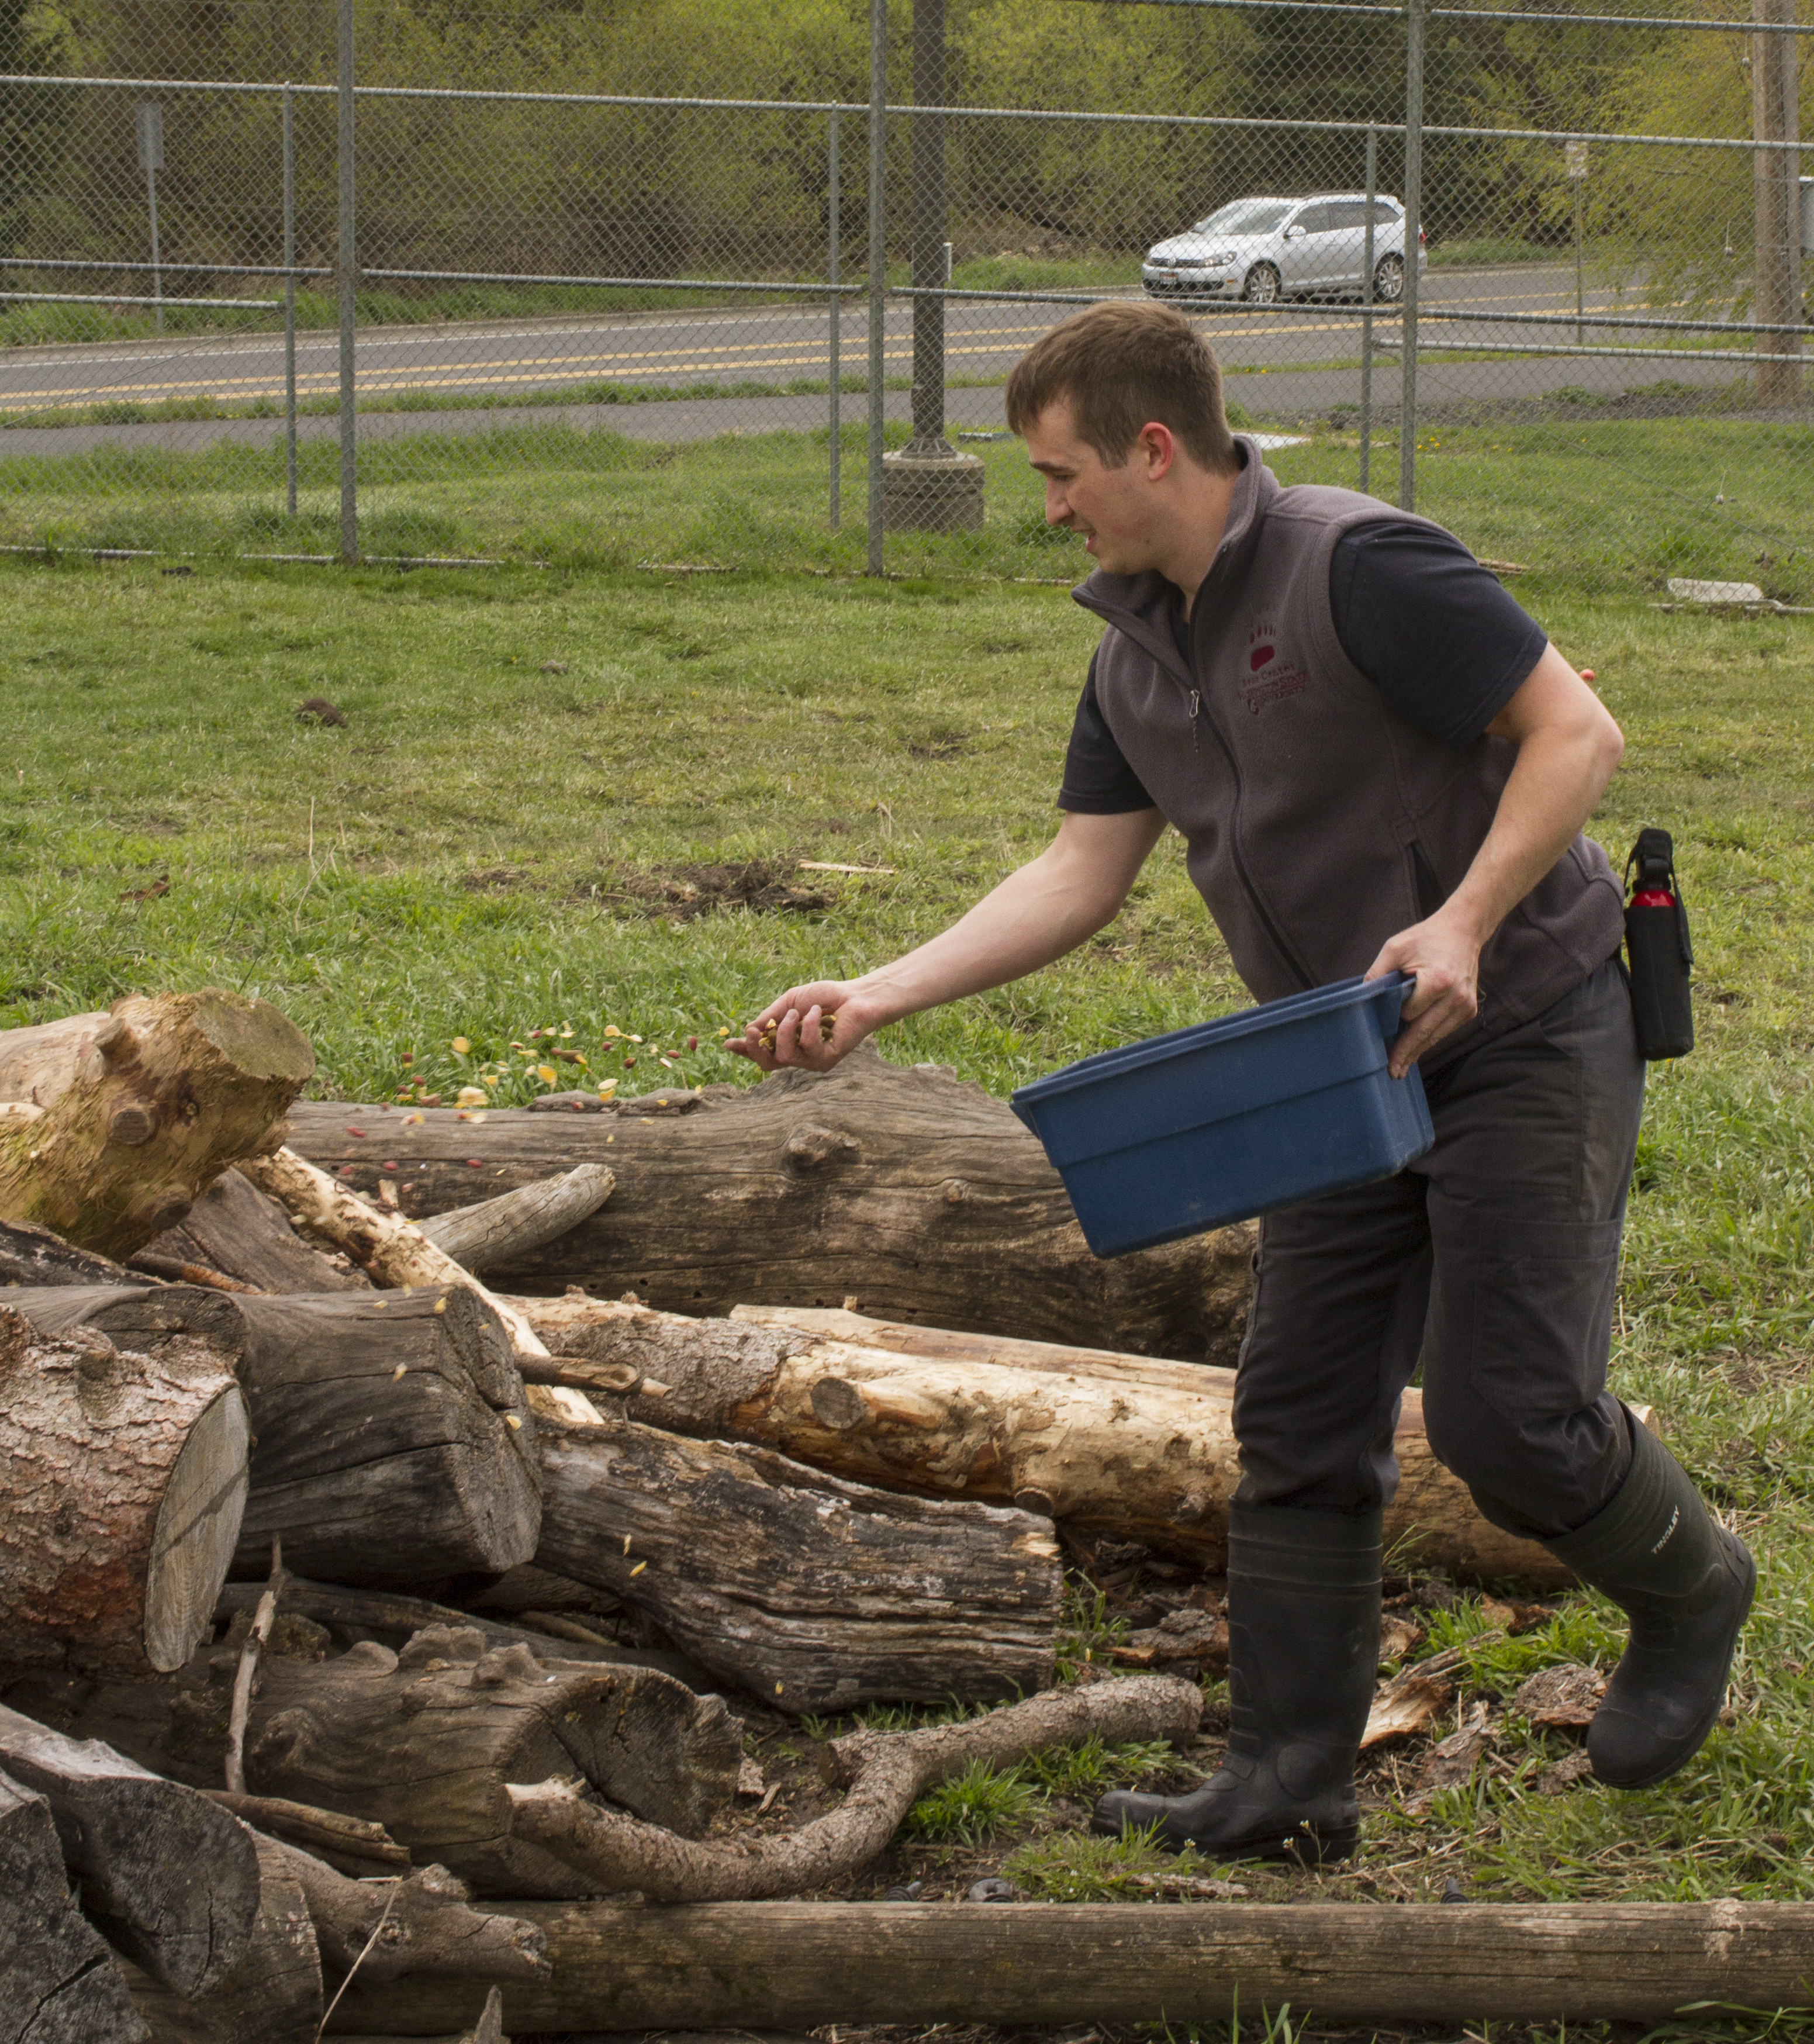 Brandon holds a bucket in one hand and throws food onto a pile of wood with the other hand.